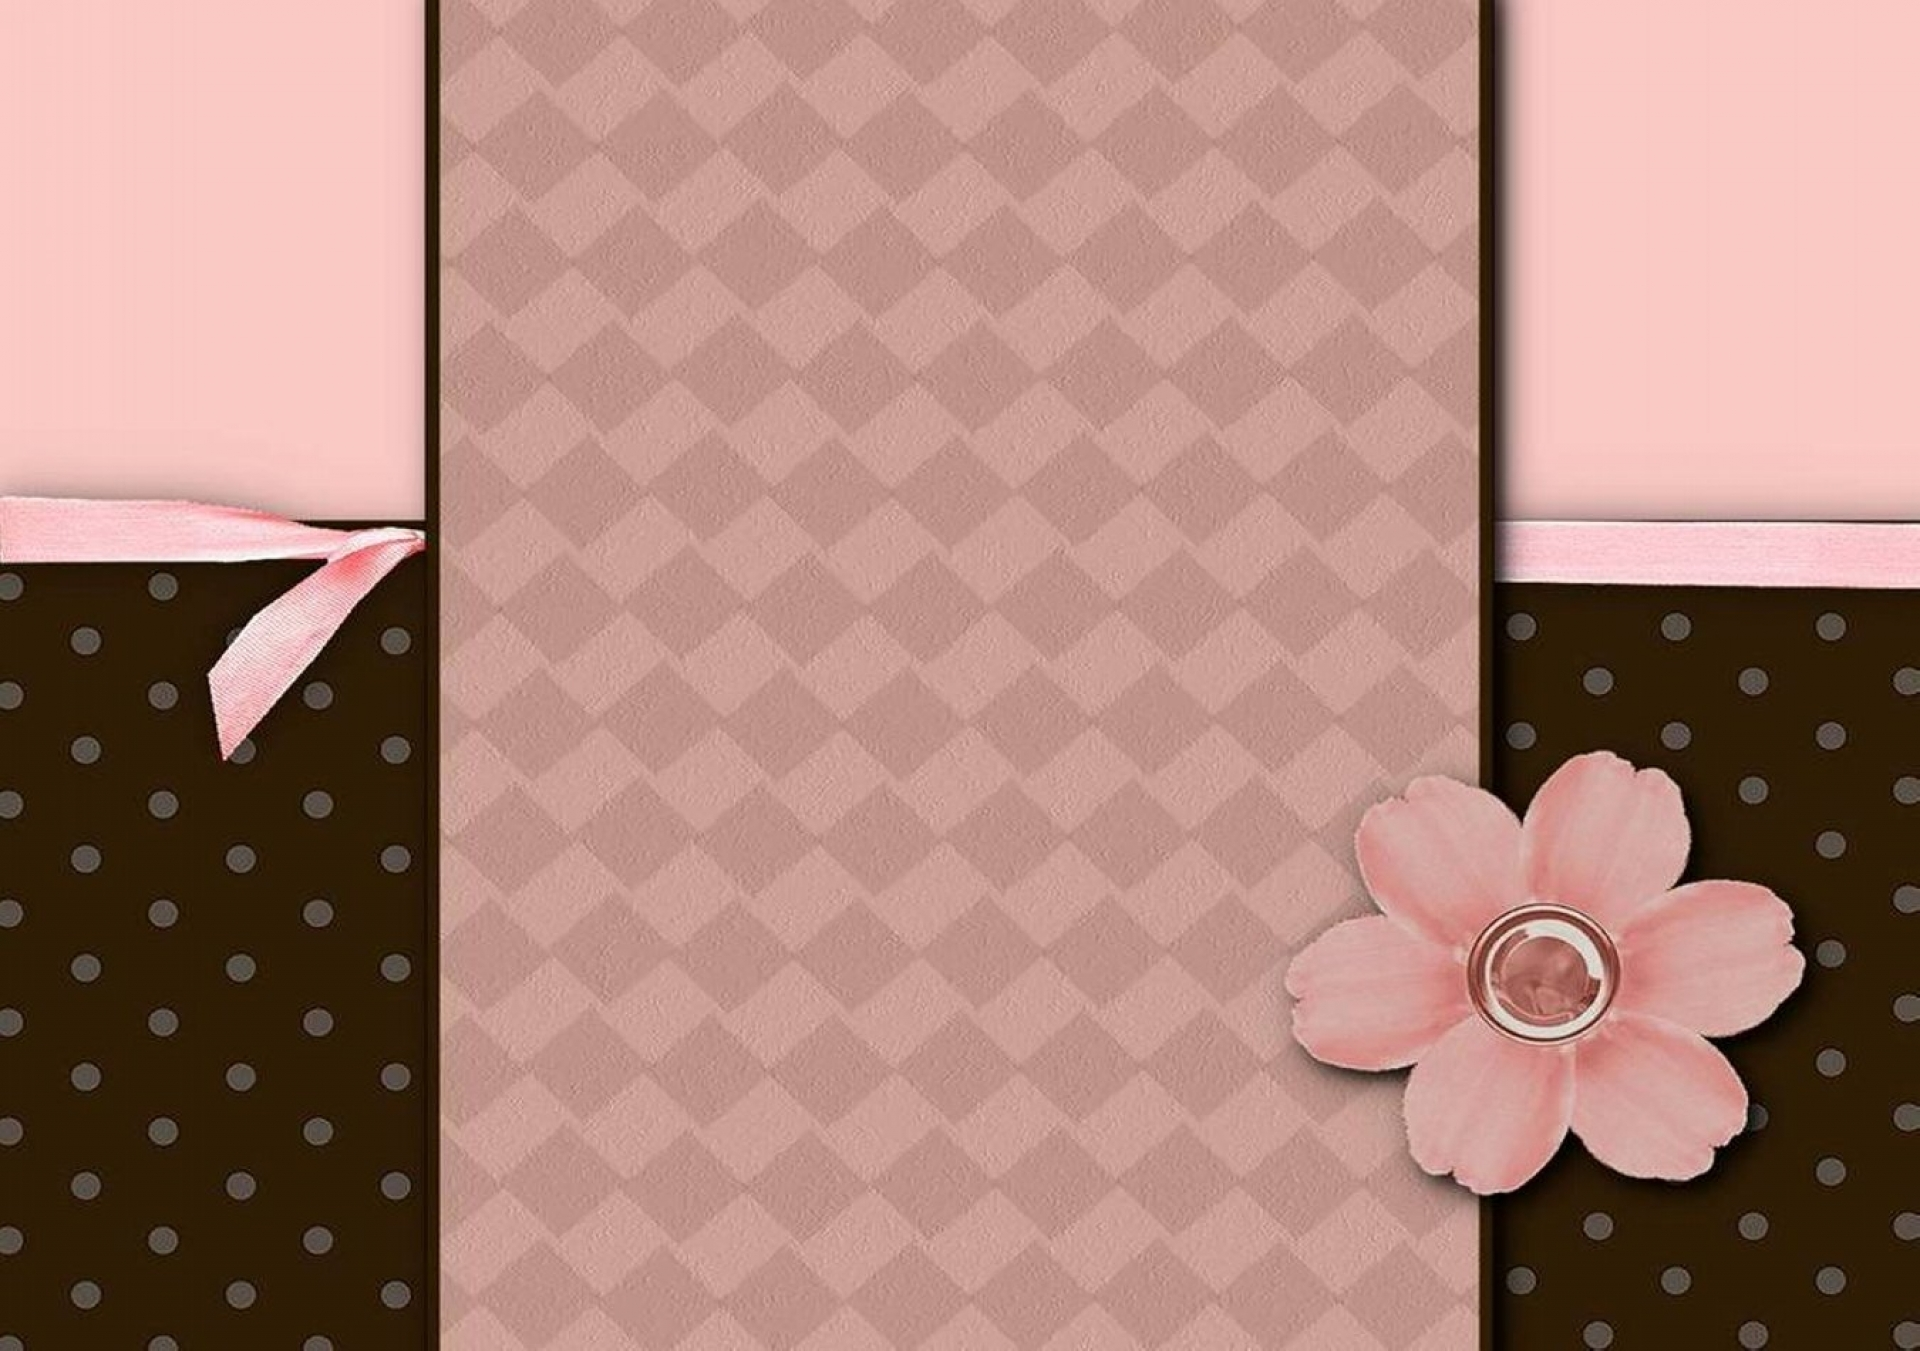 Free Animated Snow Falling Wallpaper Download Pink And Brown Wallpaper Border Gallery